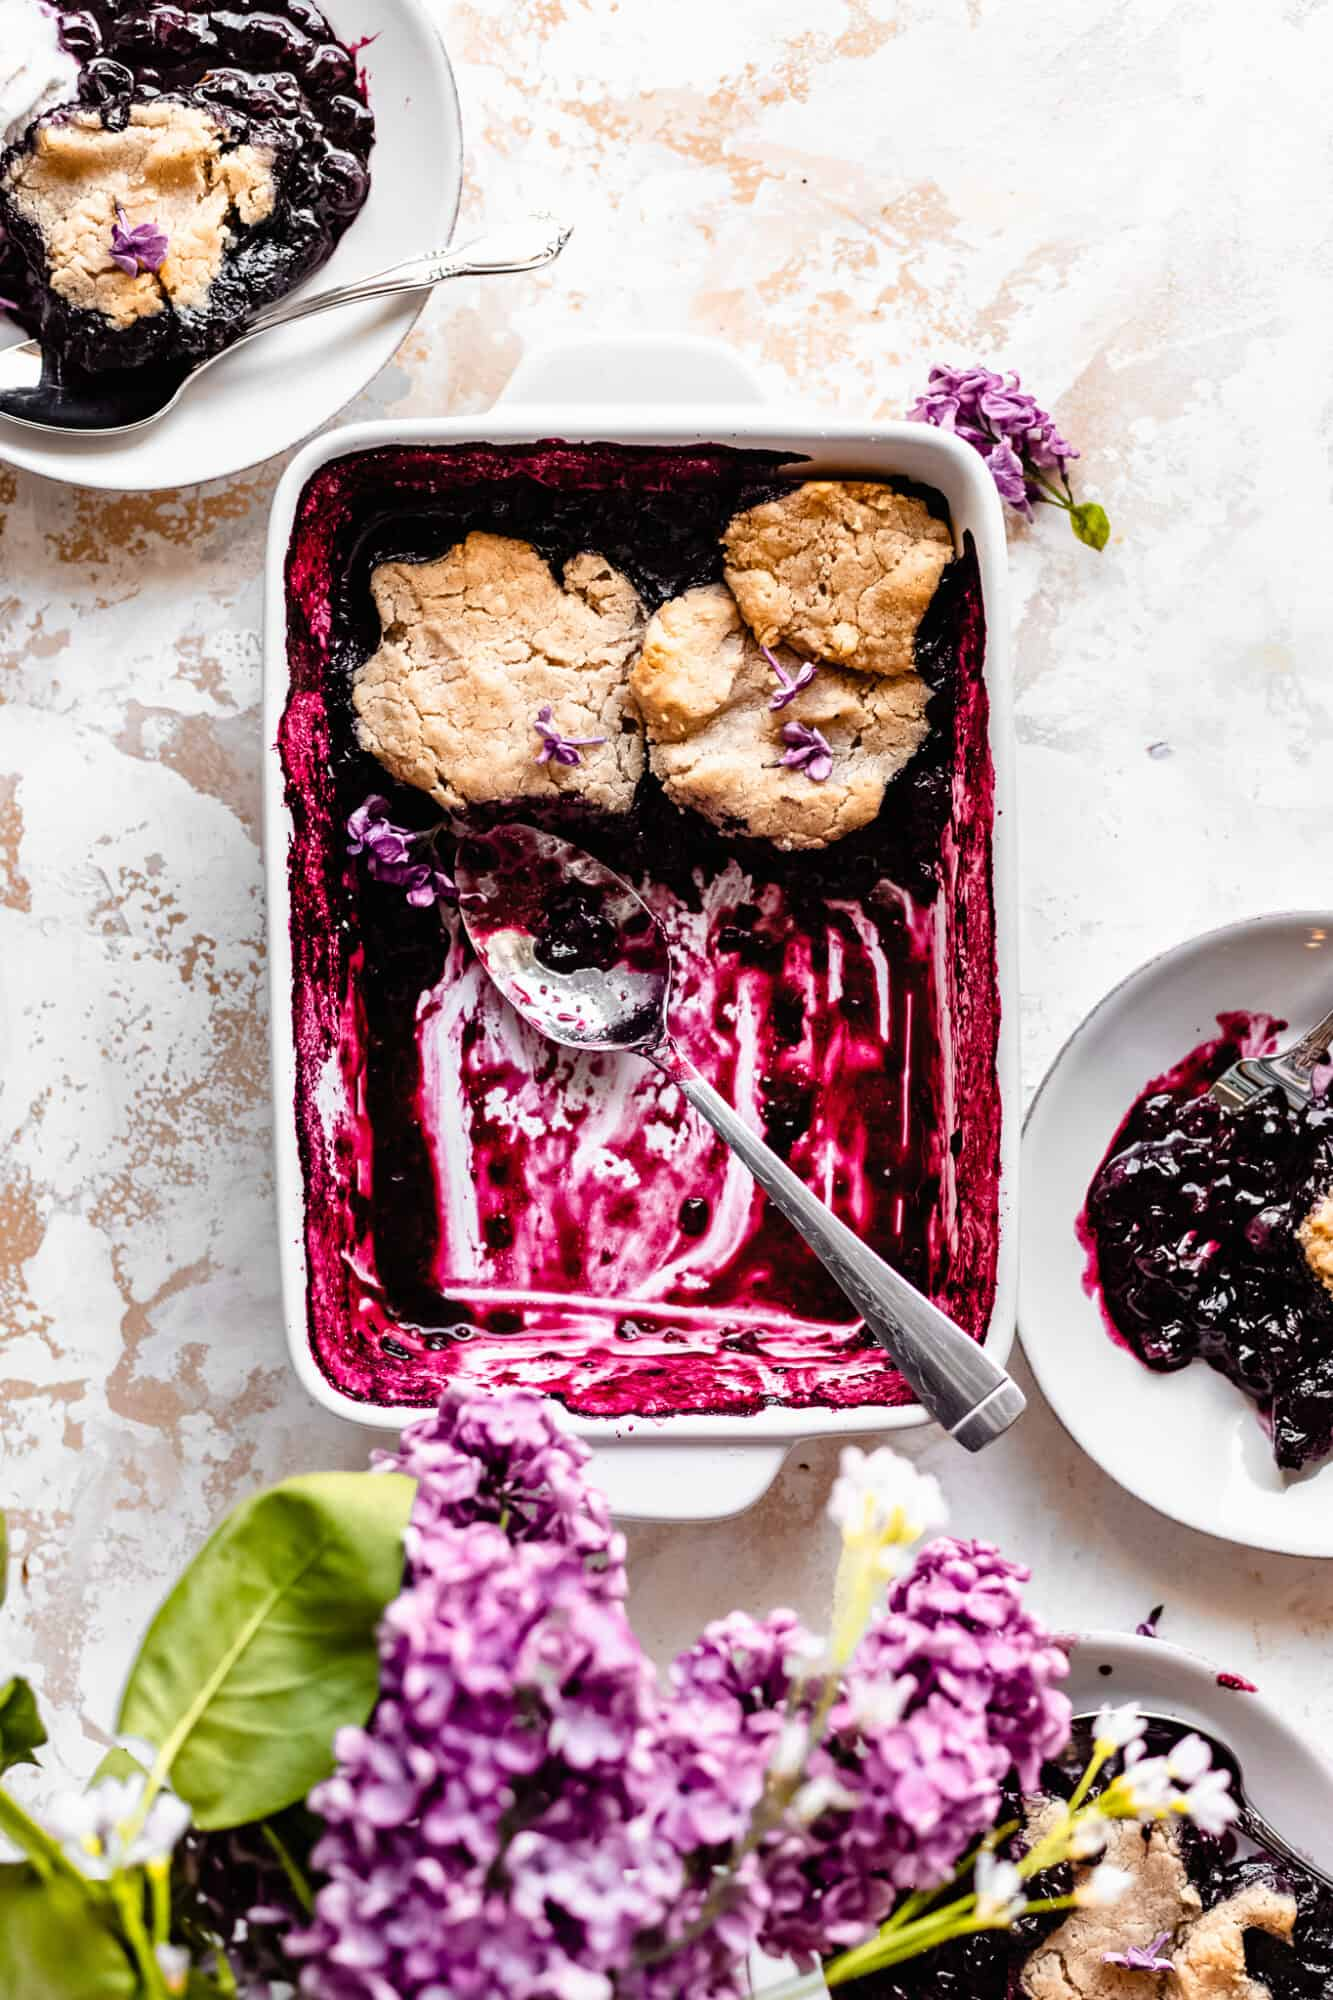 scooped out paleo vegan blueberry cobbler